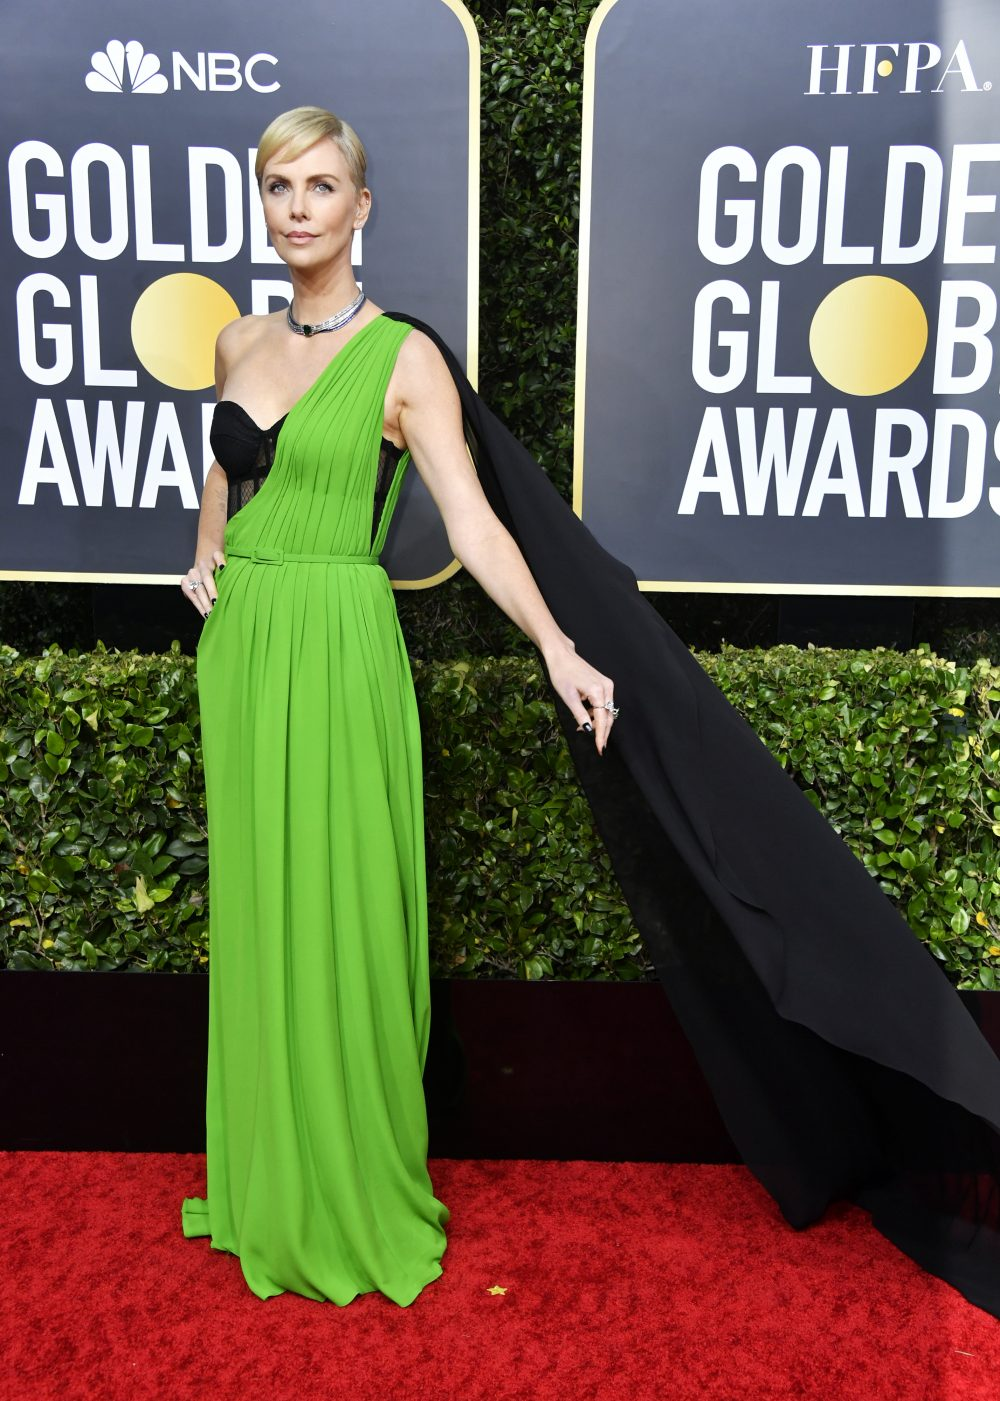 The Best and Worst Golden Globes Fashion